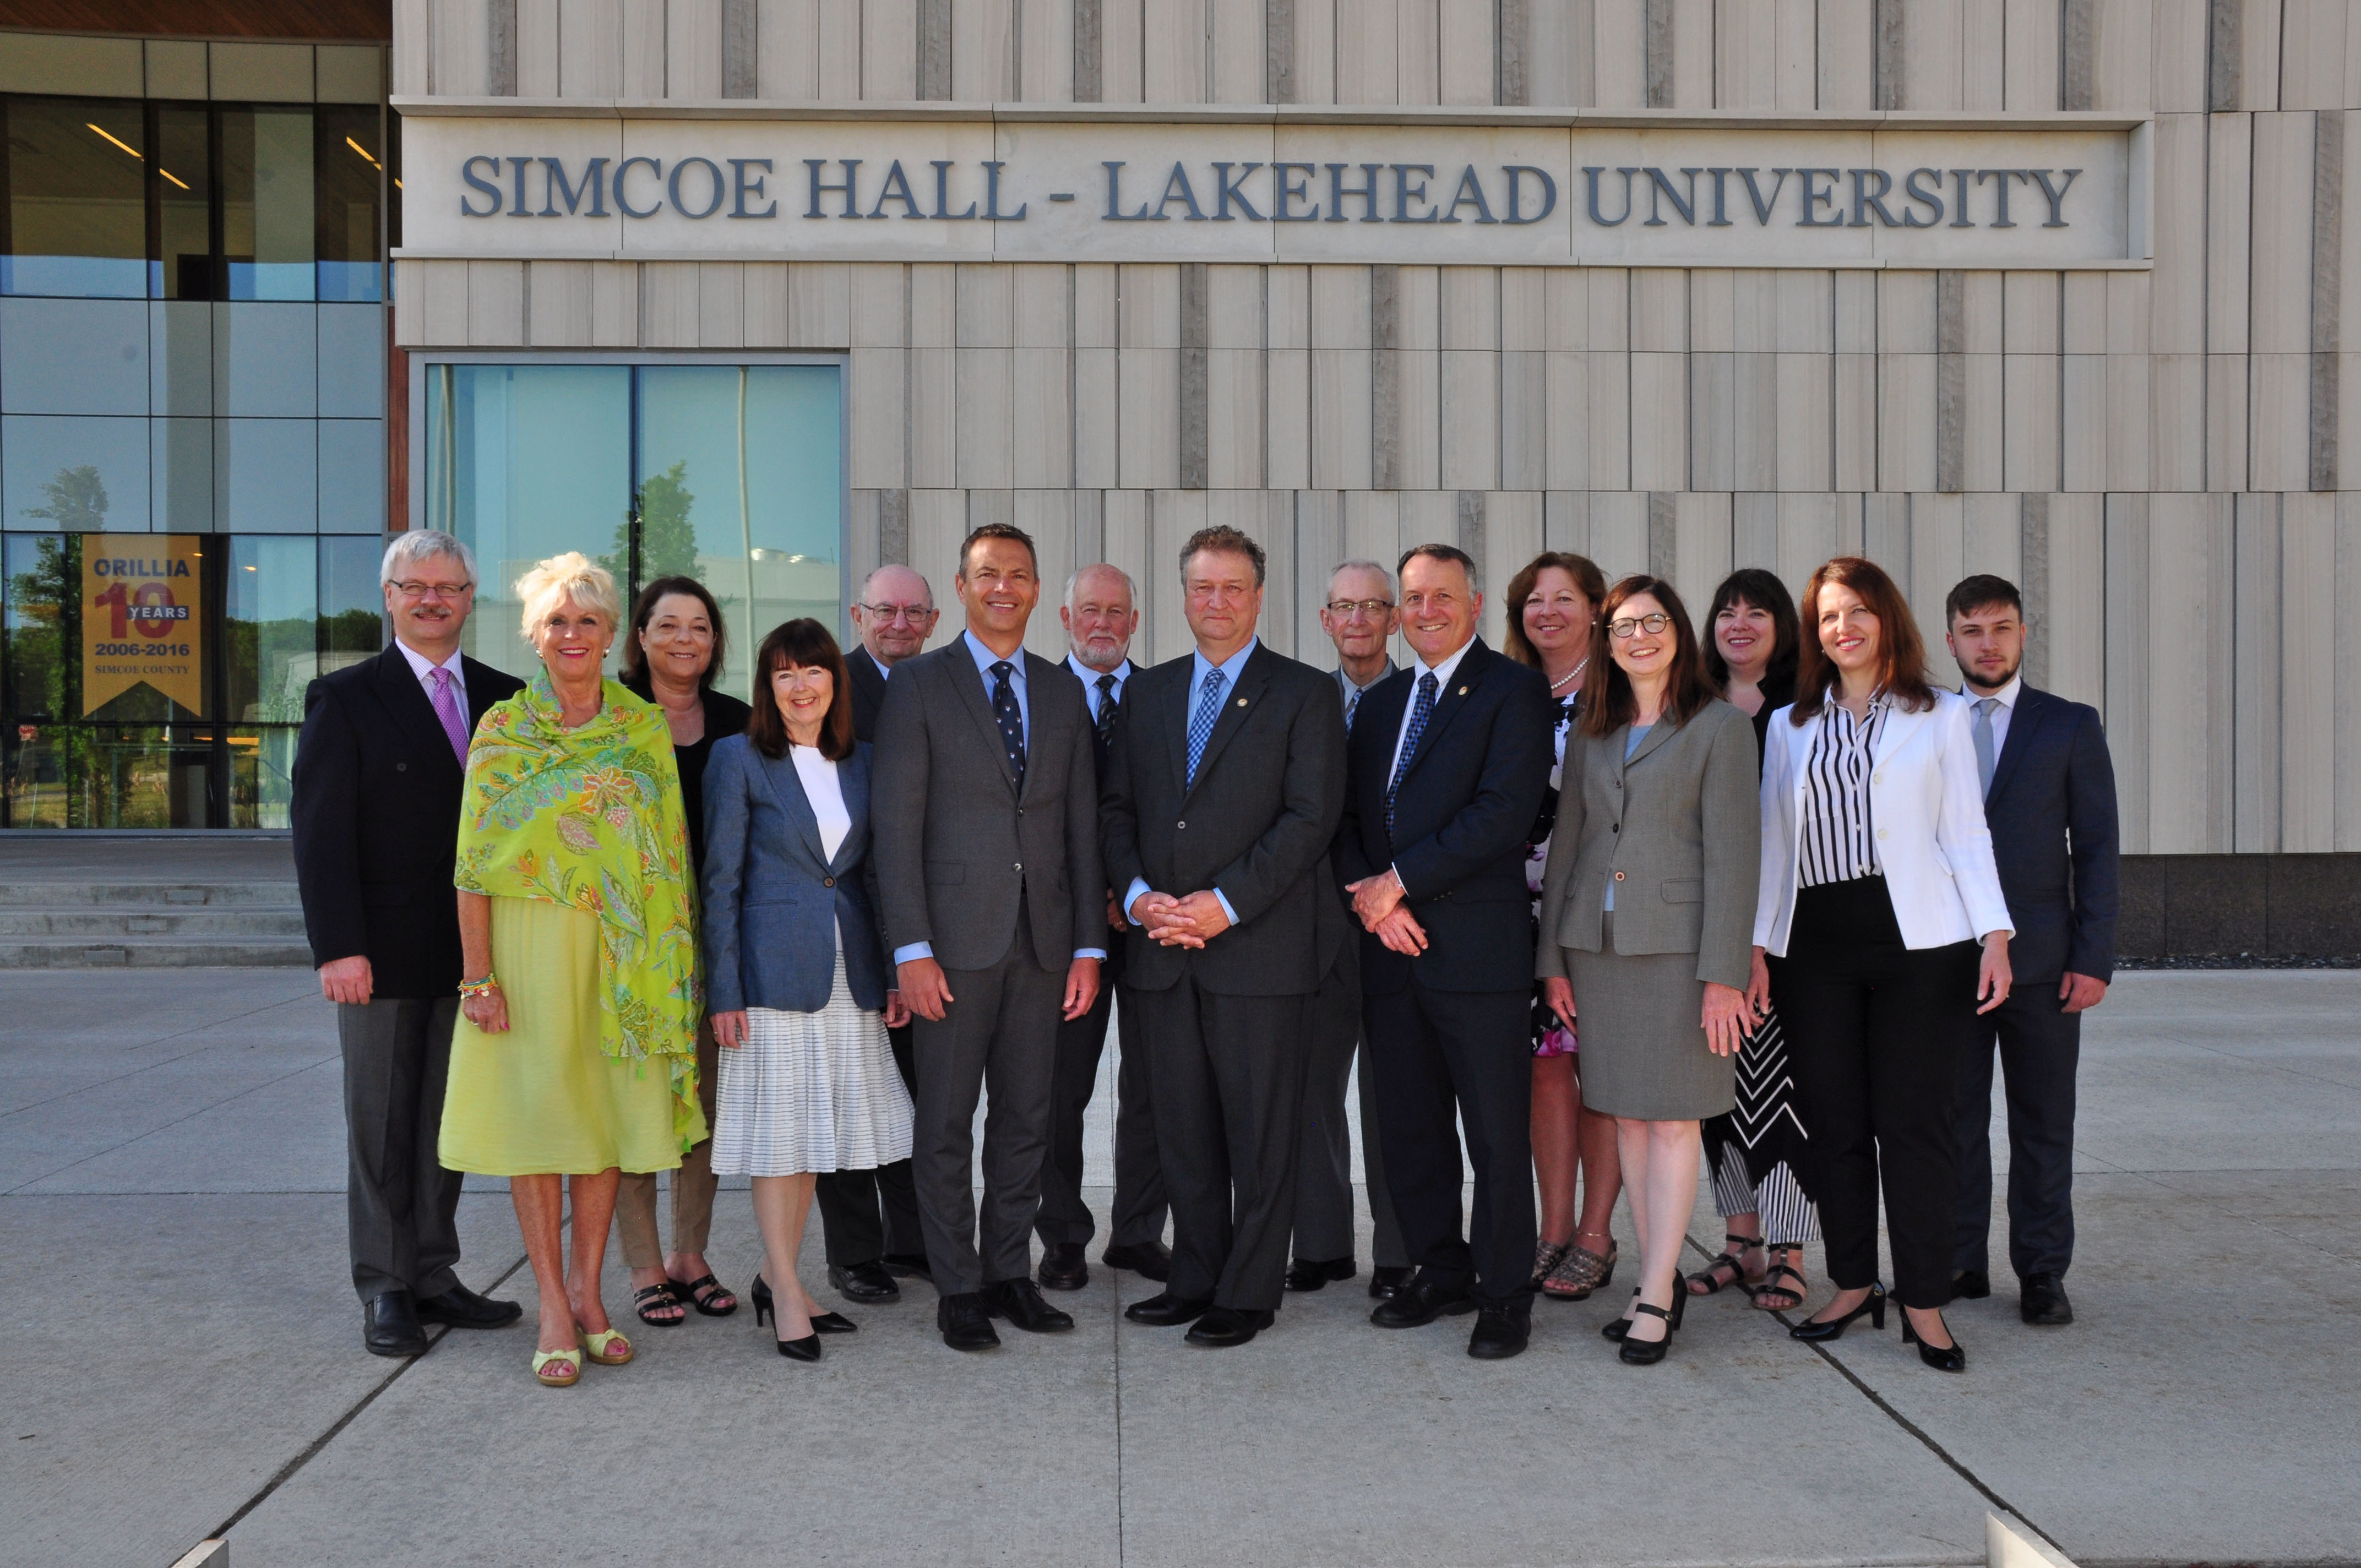 2015-16 Board of Governors